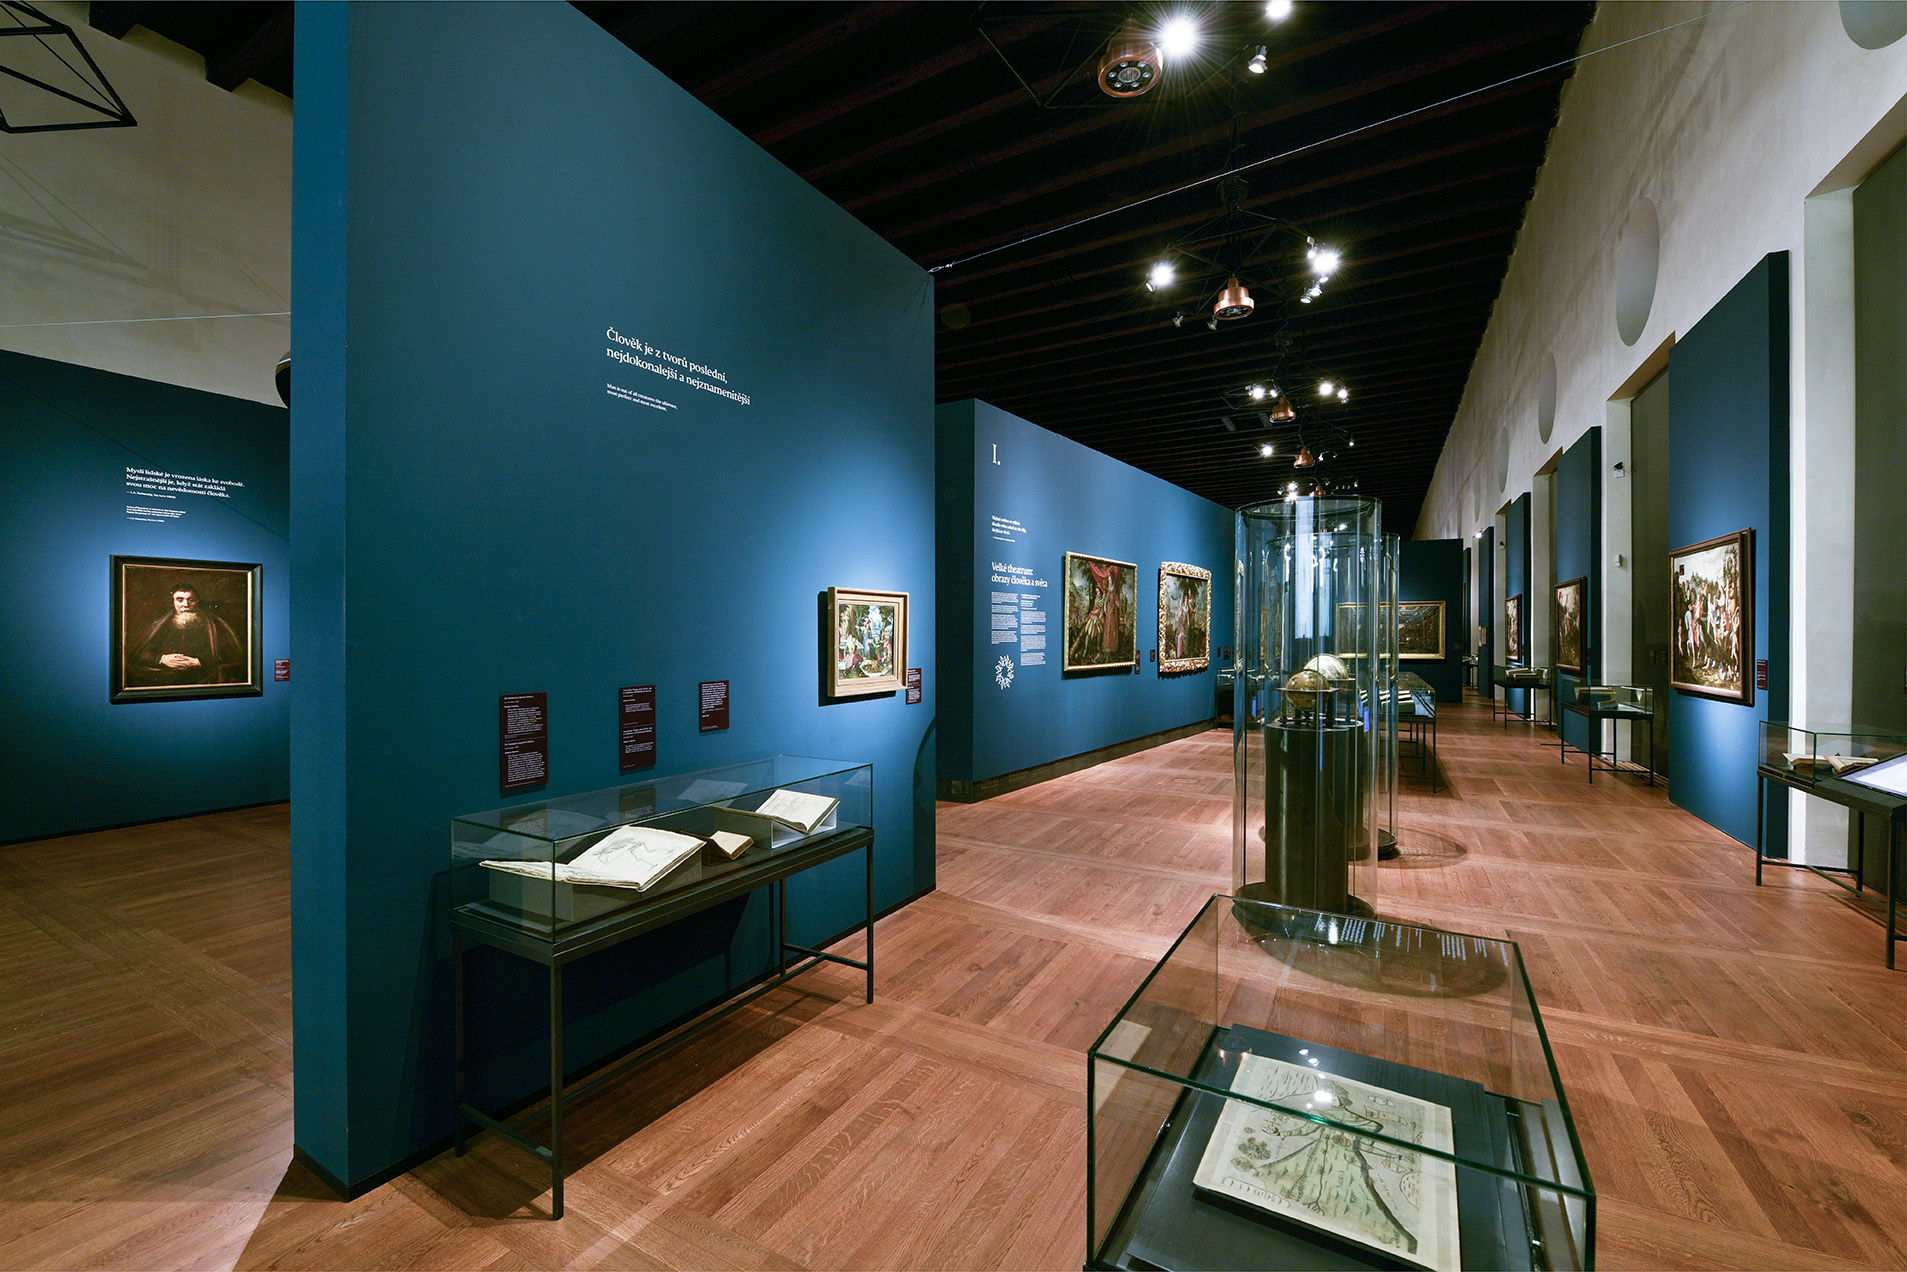 Exhibition Comenius 1592—1670 in Prague Castle